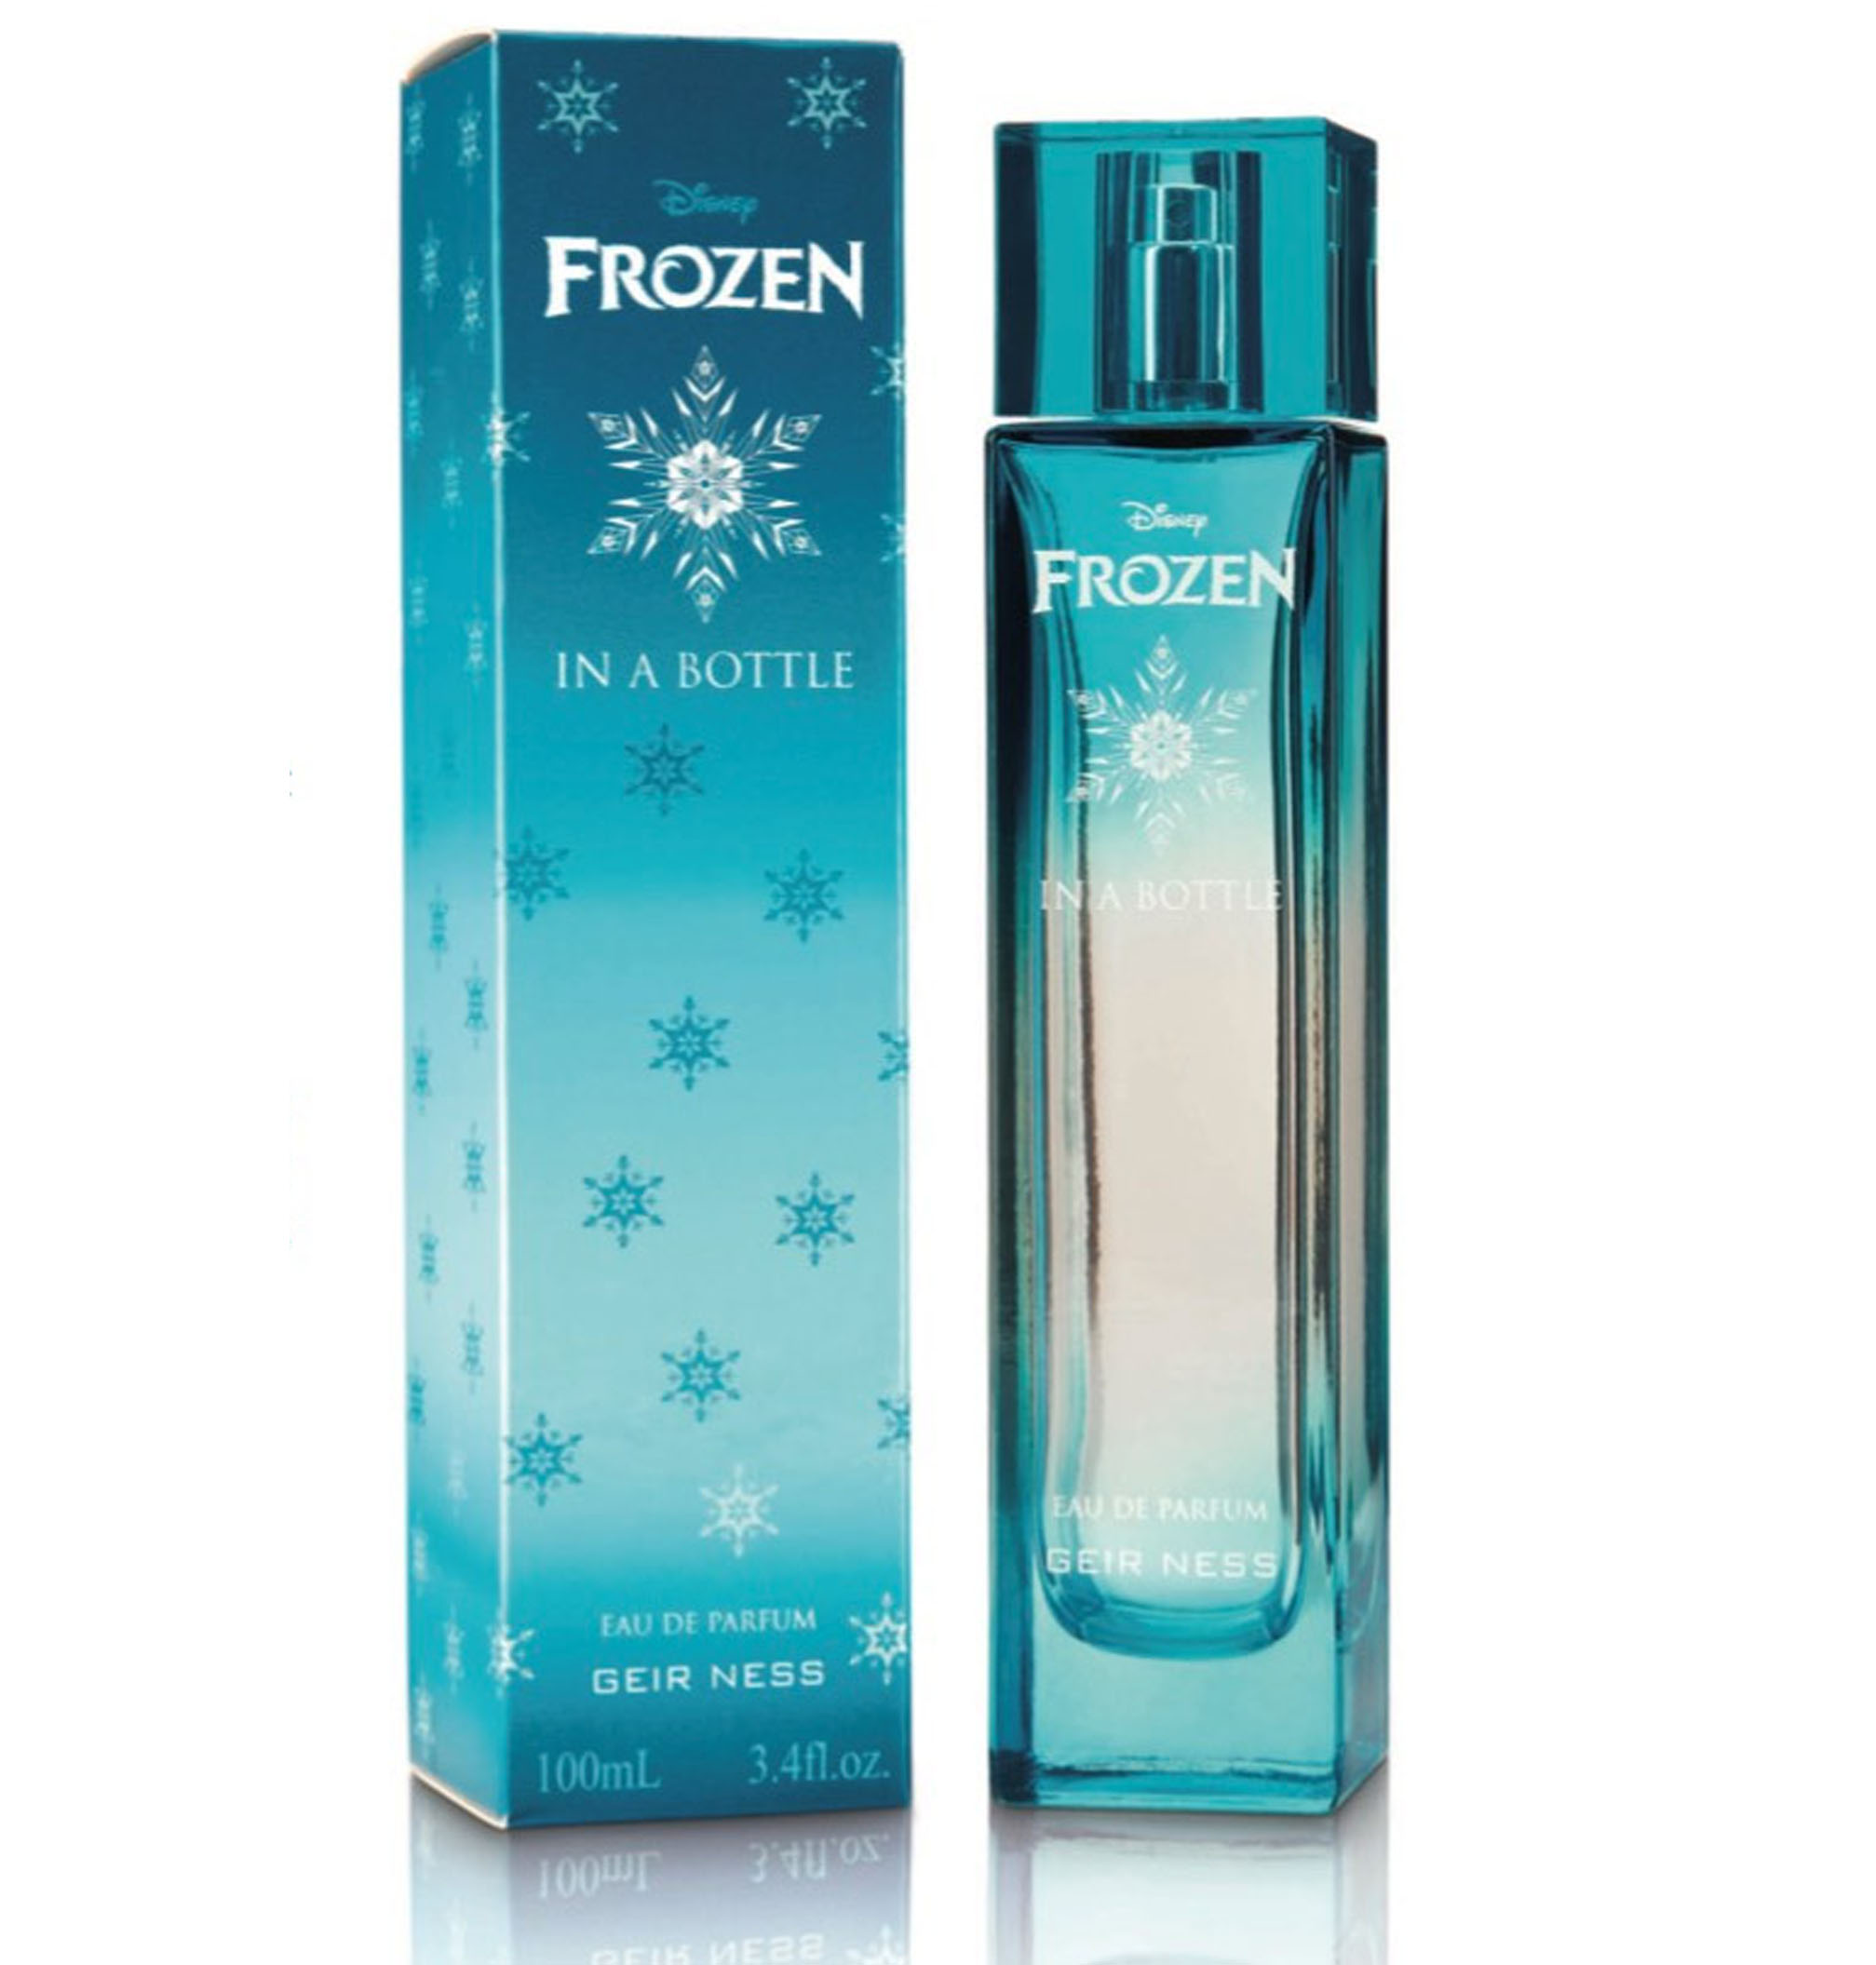 frozen in a bottle fragrance, geir ness